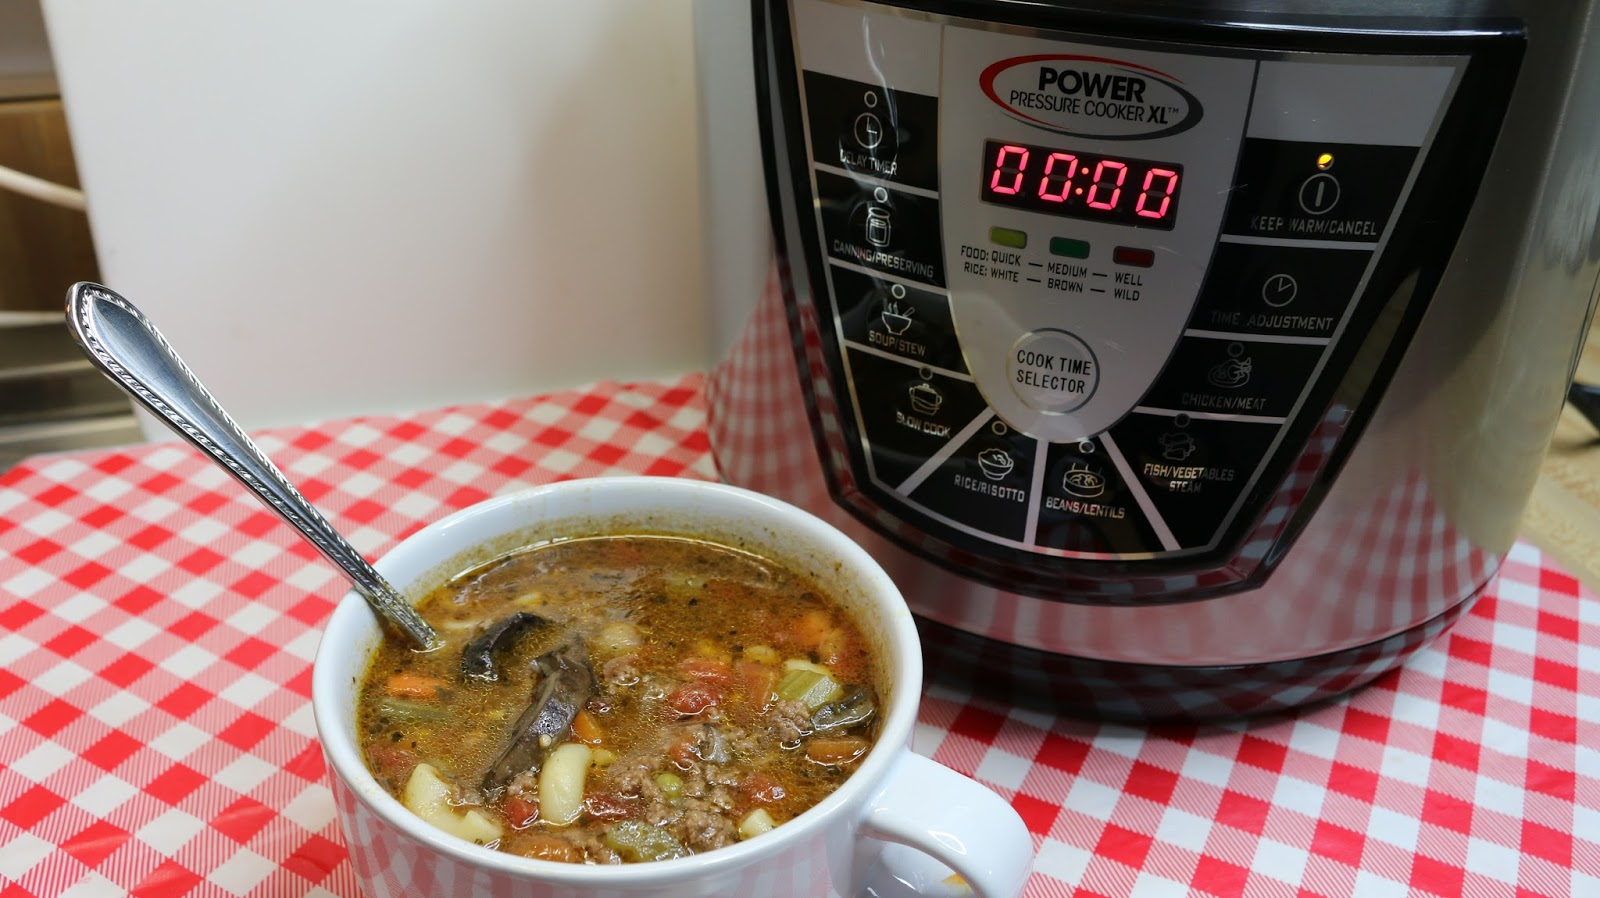 The Power Pressure Cooker Xl Arrived At My Home A Little Over A Month Ago  And I Have Cooked In It Several Times Many Of The Things I Have Shared  With You